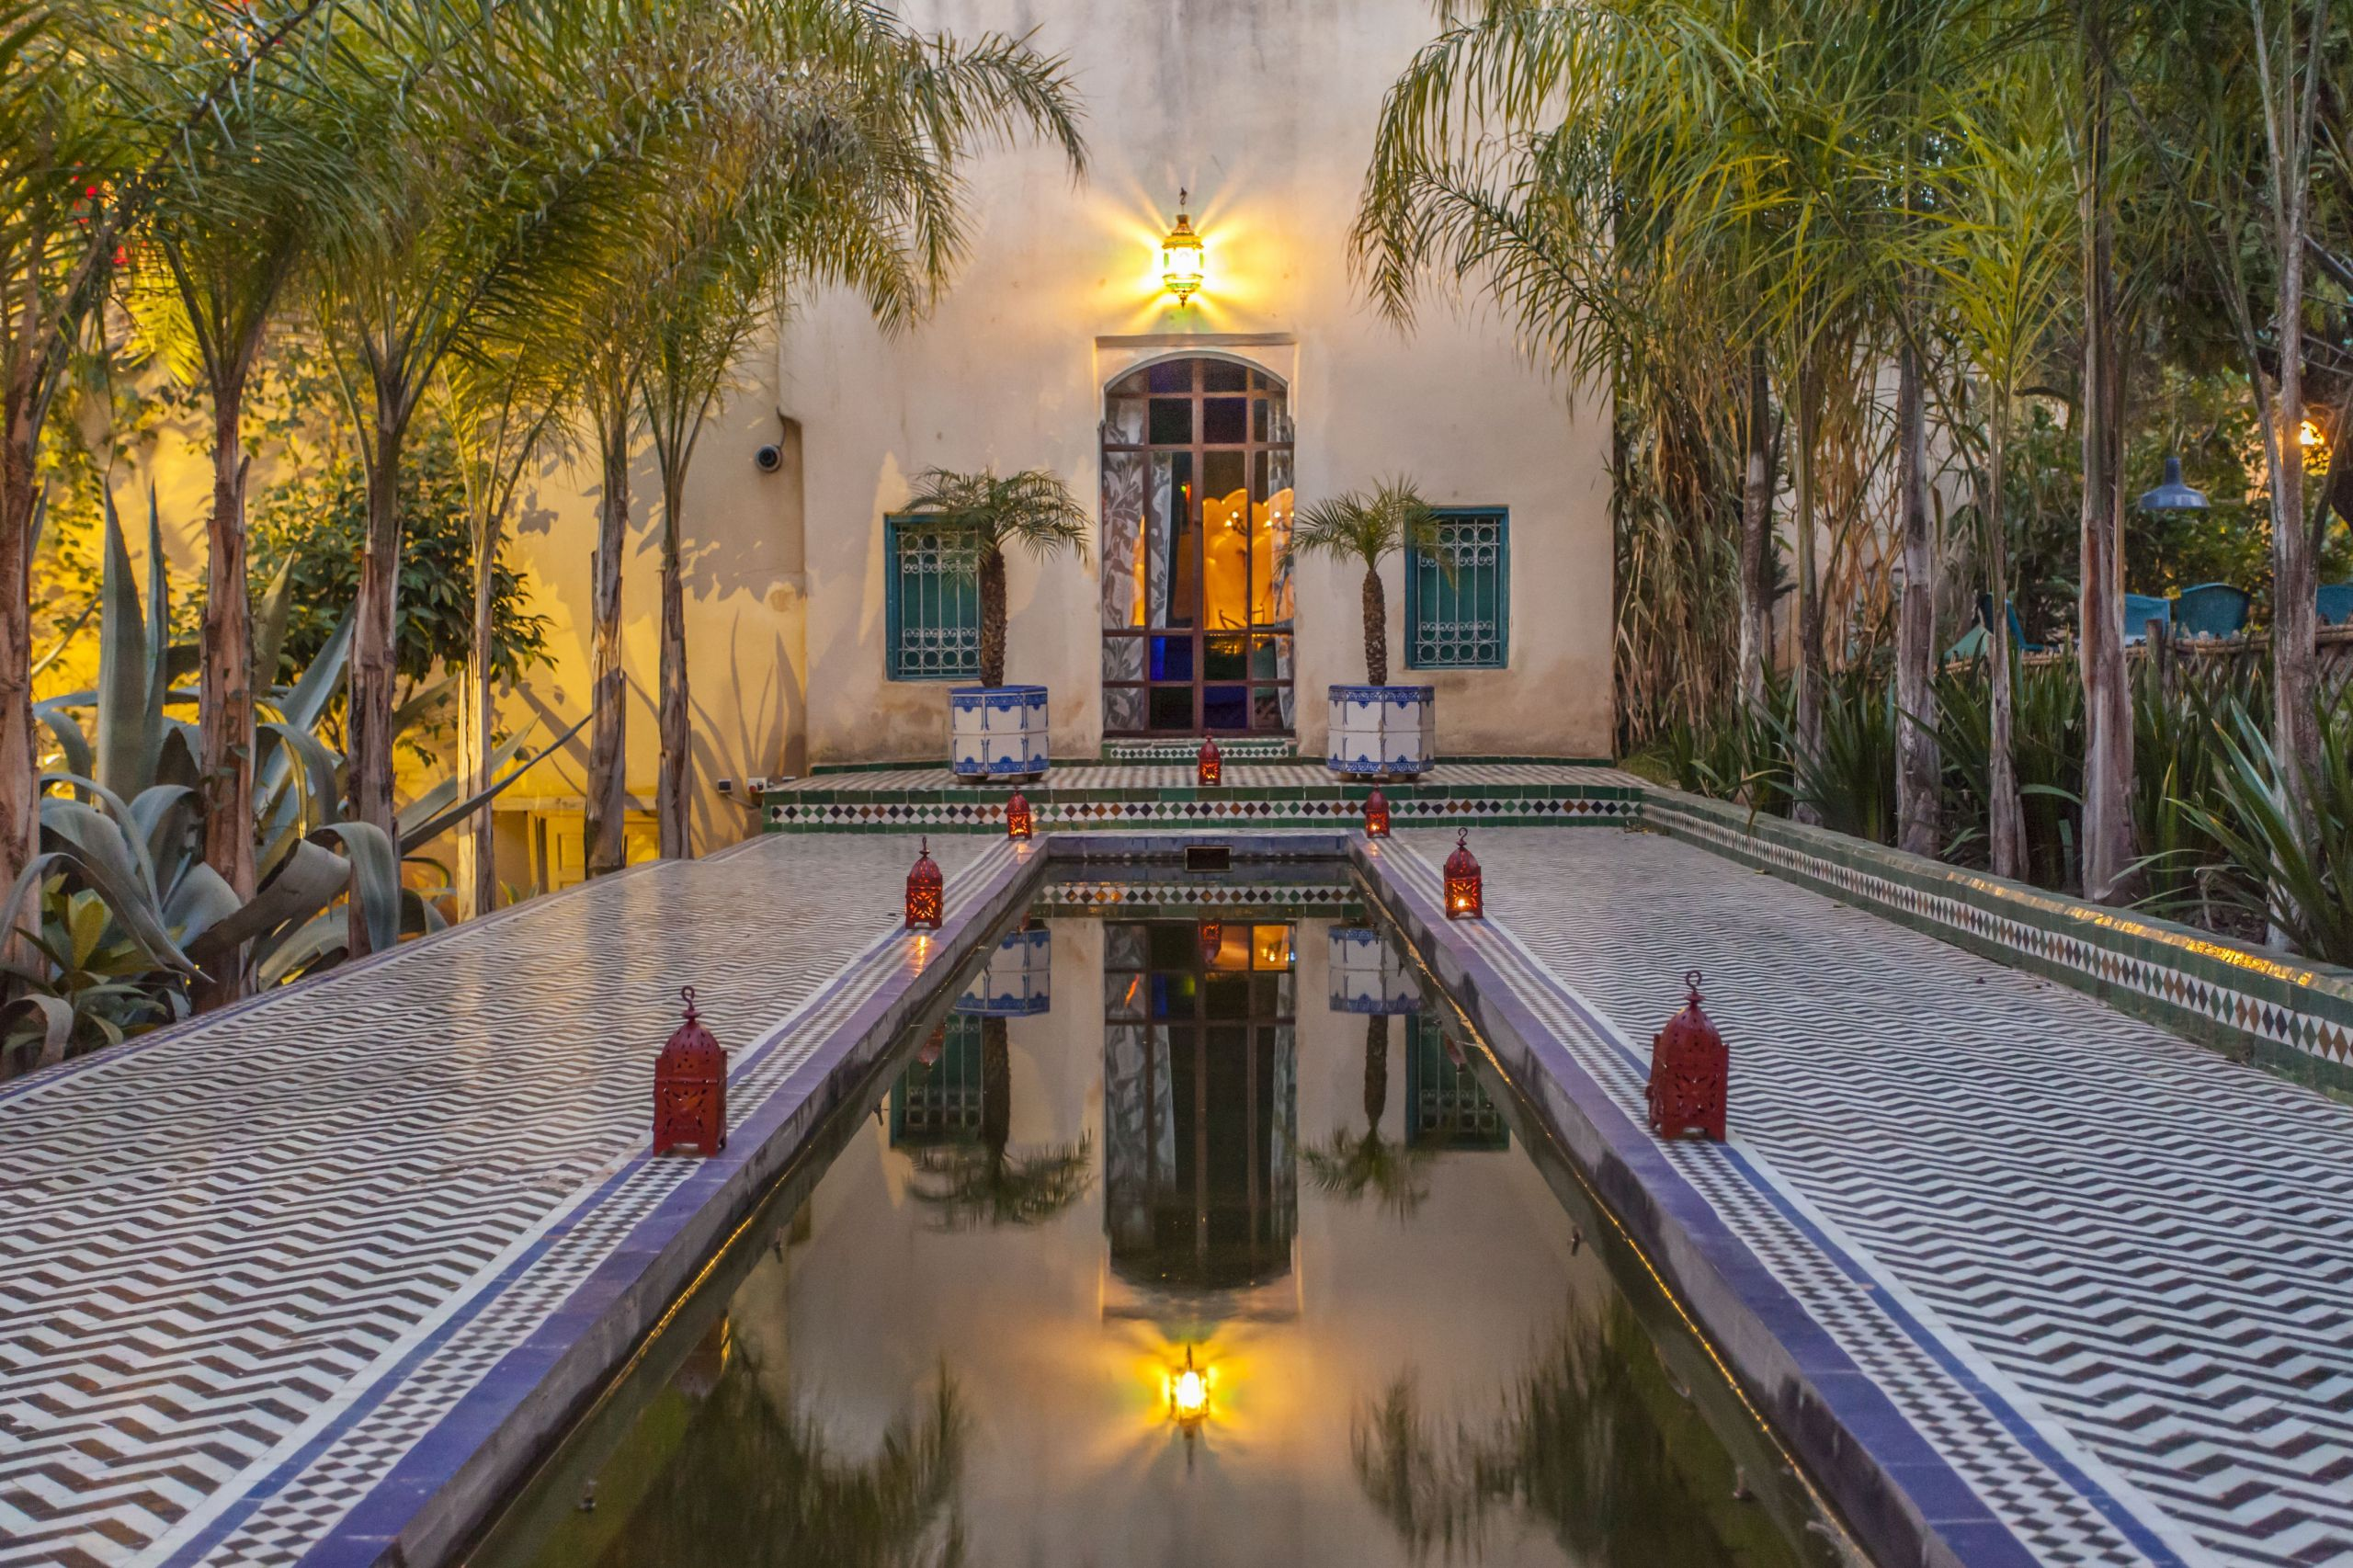 Table De Jardin 8 Places Best Of the top 15 Things to See and Do In Morocco Of 39 Charmant Table De Jardin 8 Places